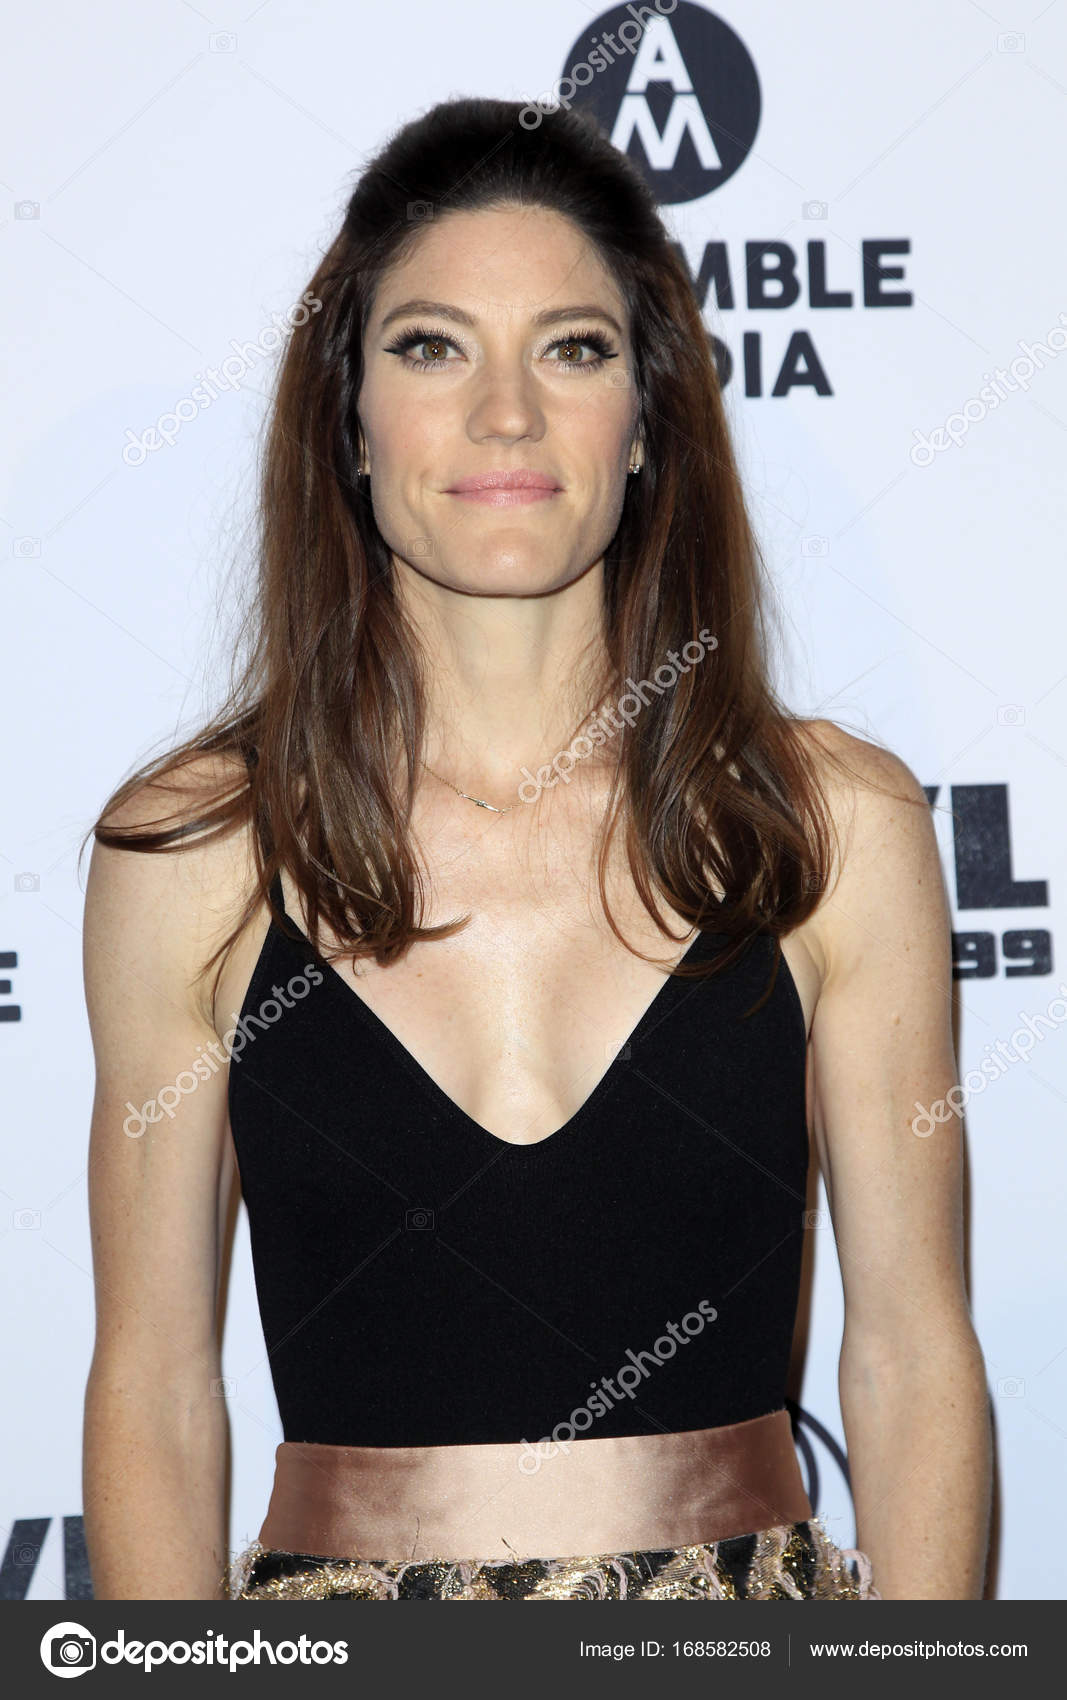 Pics Jennifer Carpenter nudes (72 foto and video), Topless, Paparazzi, Boobs, panties 2018